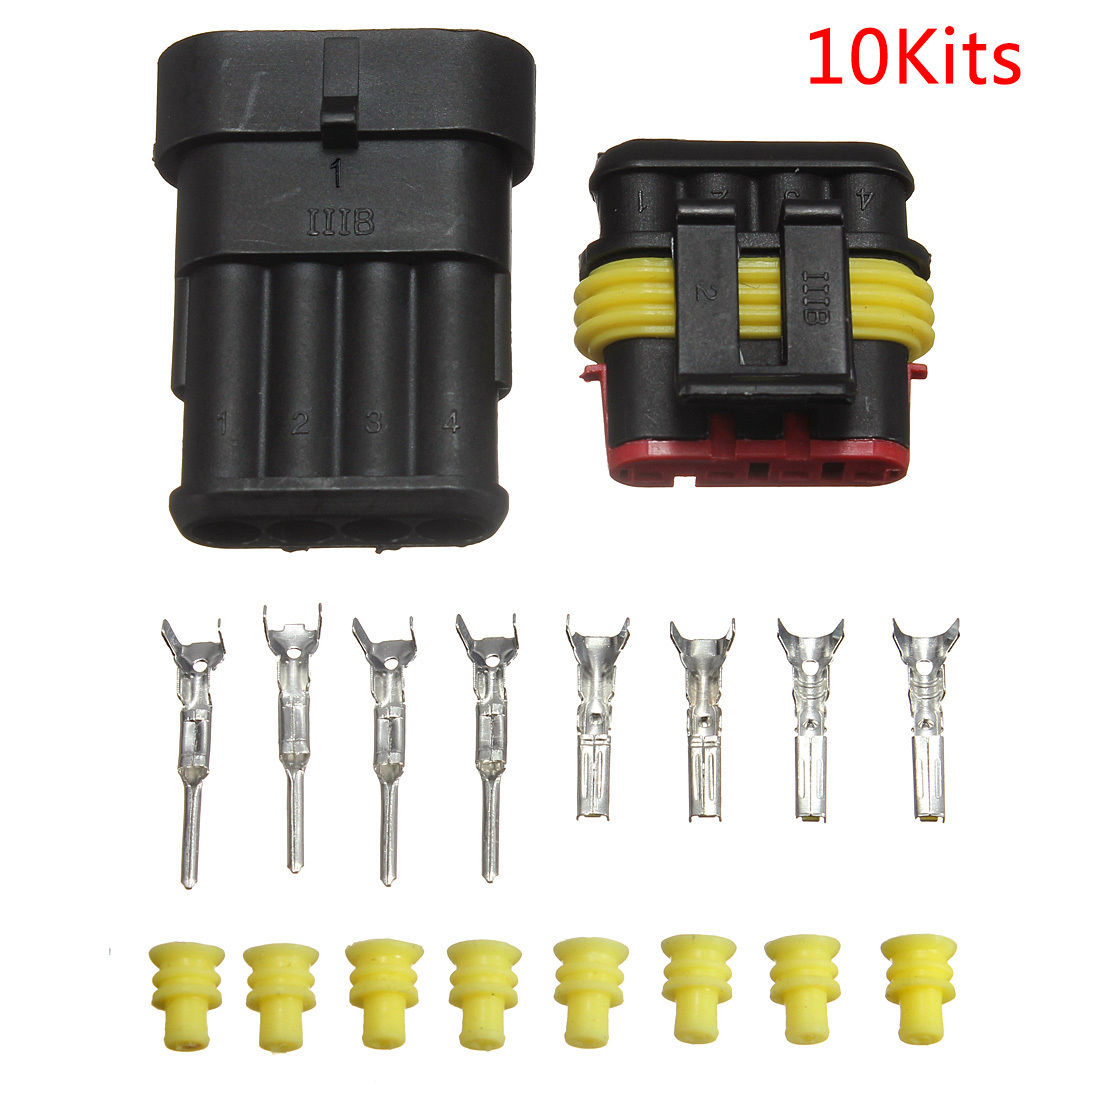 10 Kits Car Auto 4 Pin Way Sealed Waterproof Electrical Wire Connector Plug Sets встраиваемый сейф valberg aw 1 3836 s11199530101